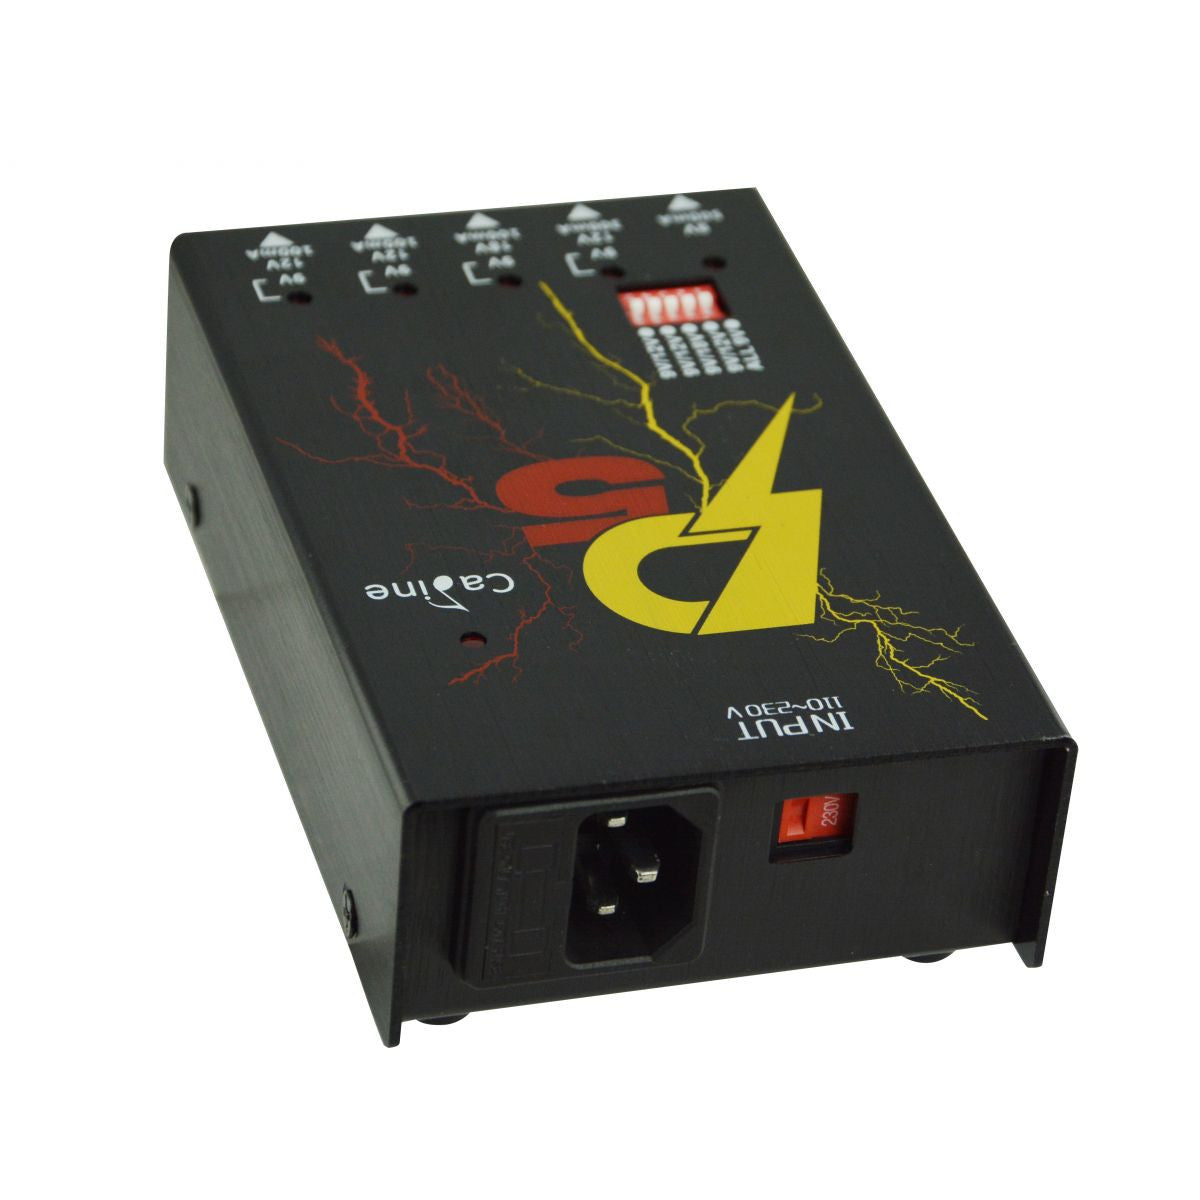 P5 Isolated Power Supply Caline (ETIQUETA VERDE ✅)